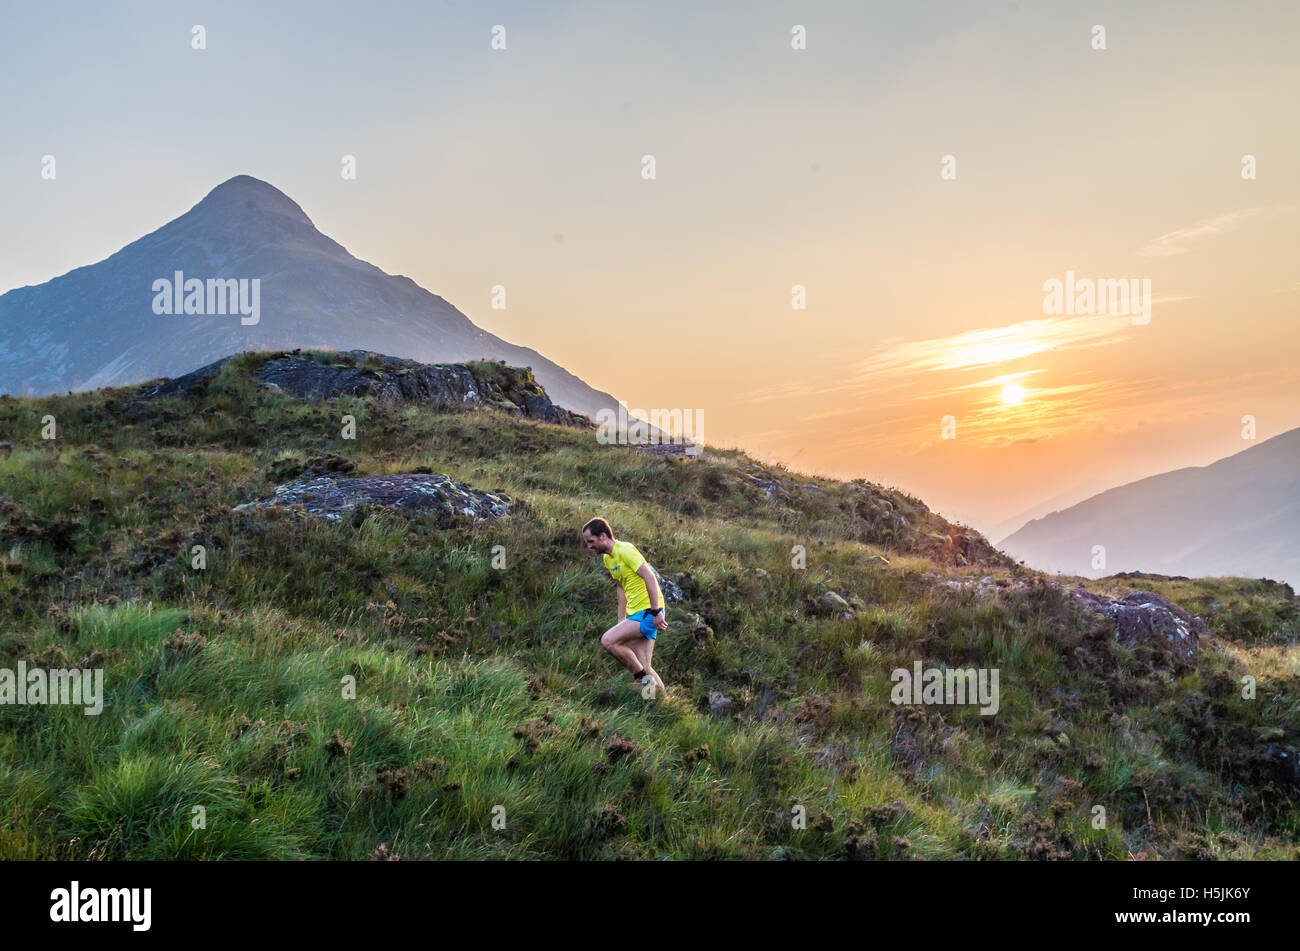 Trailrunner during sunset in the Scottish Highlands at Loch Leven, Great Brittain - Stock Image